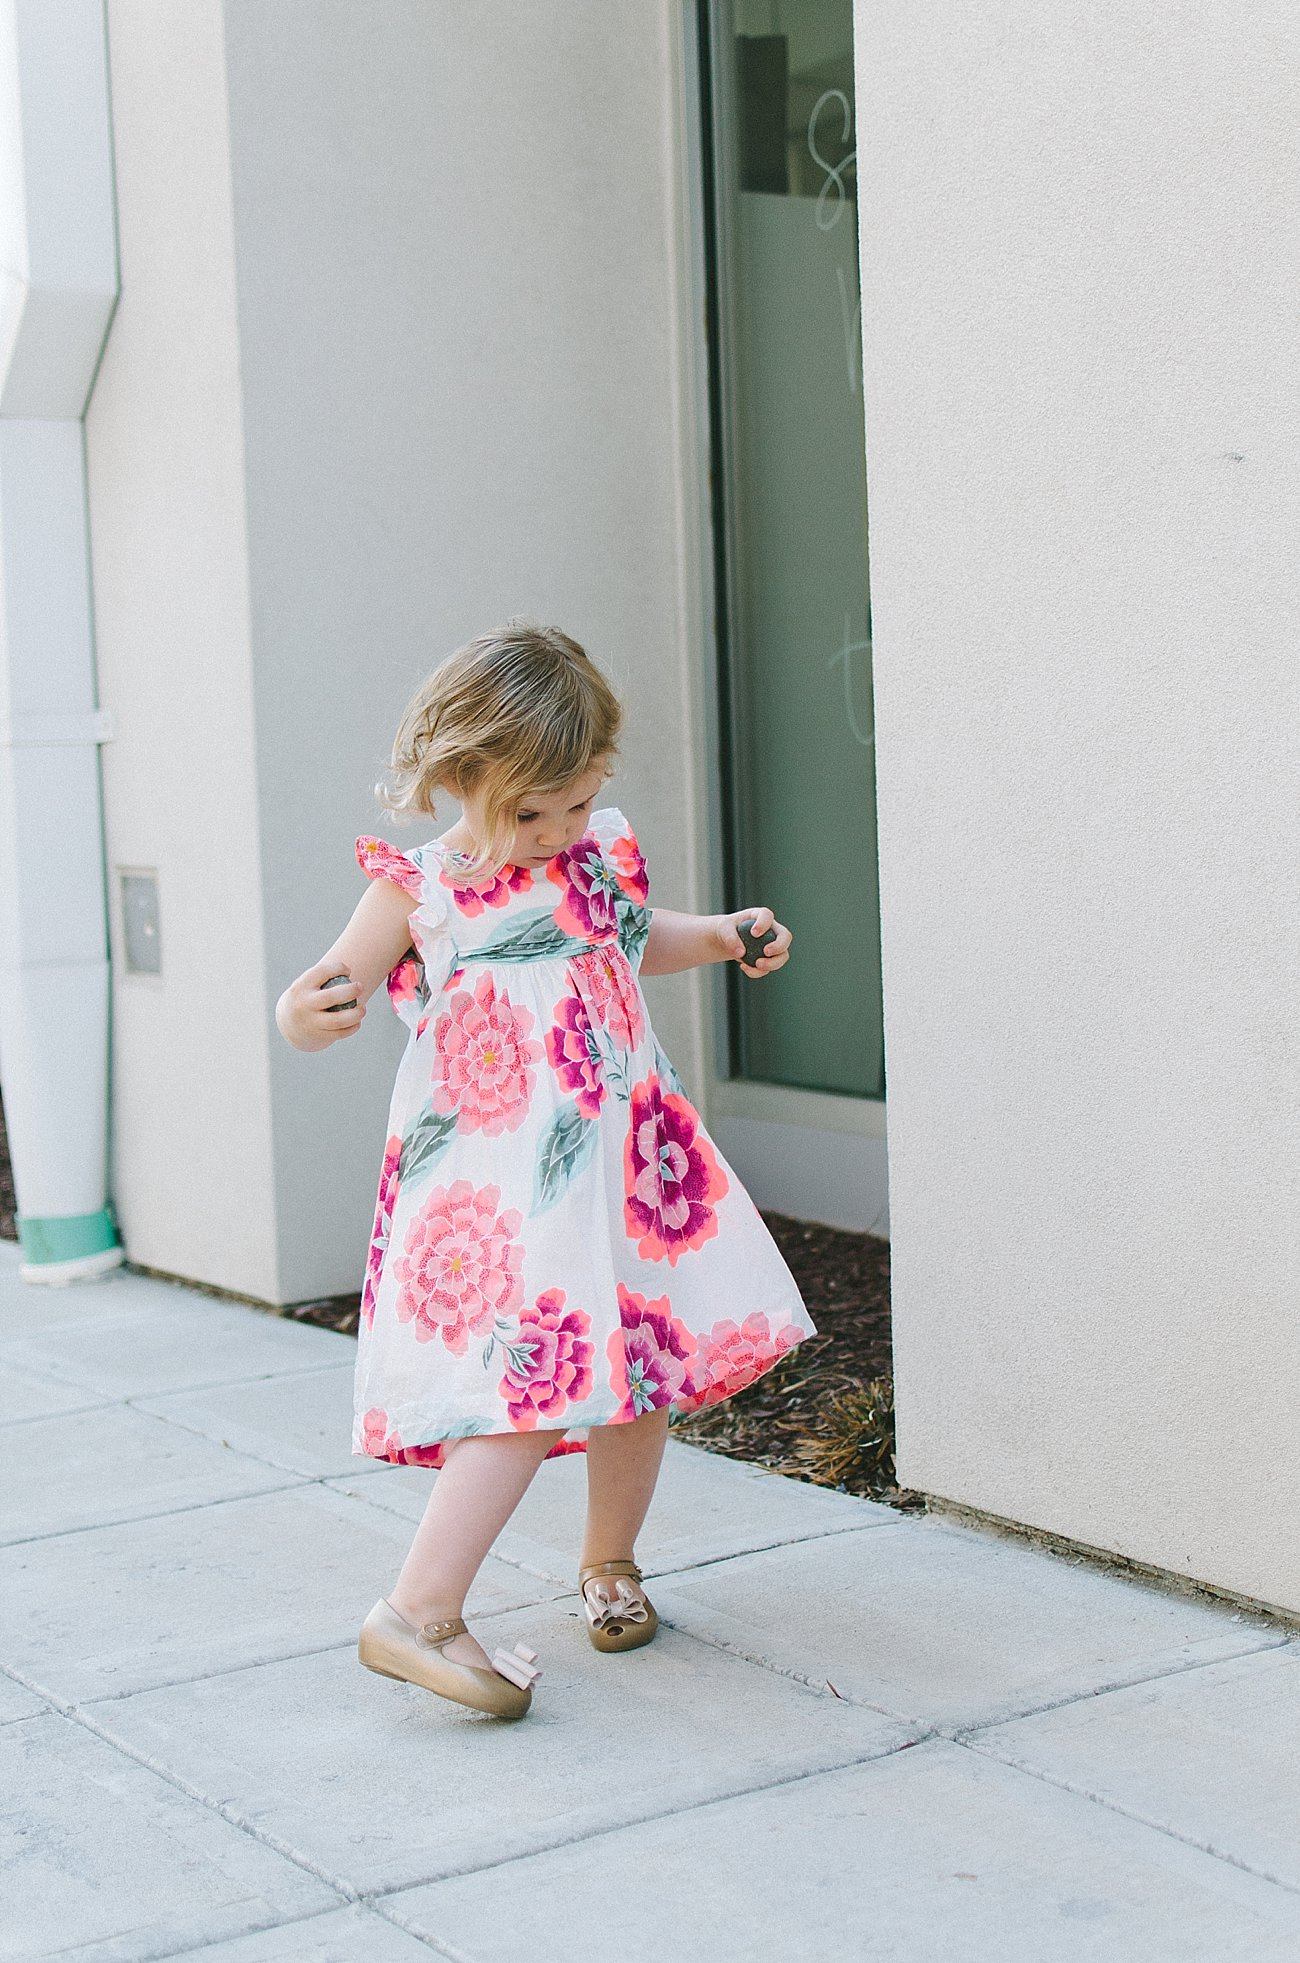 Ethically Made Easter Outfits for Women, Children, and Babies - Ethical Fashion - Fair Trade Fashion (14)